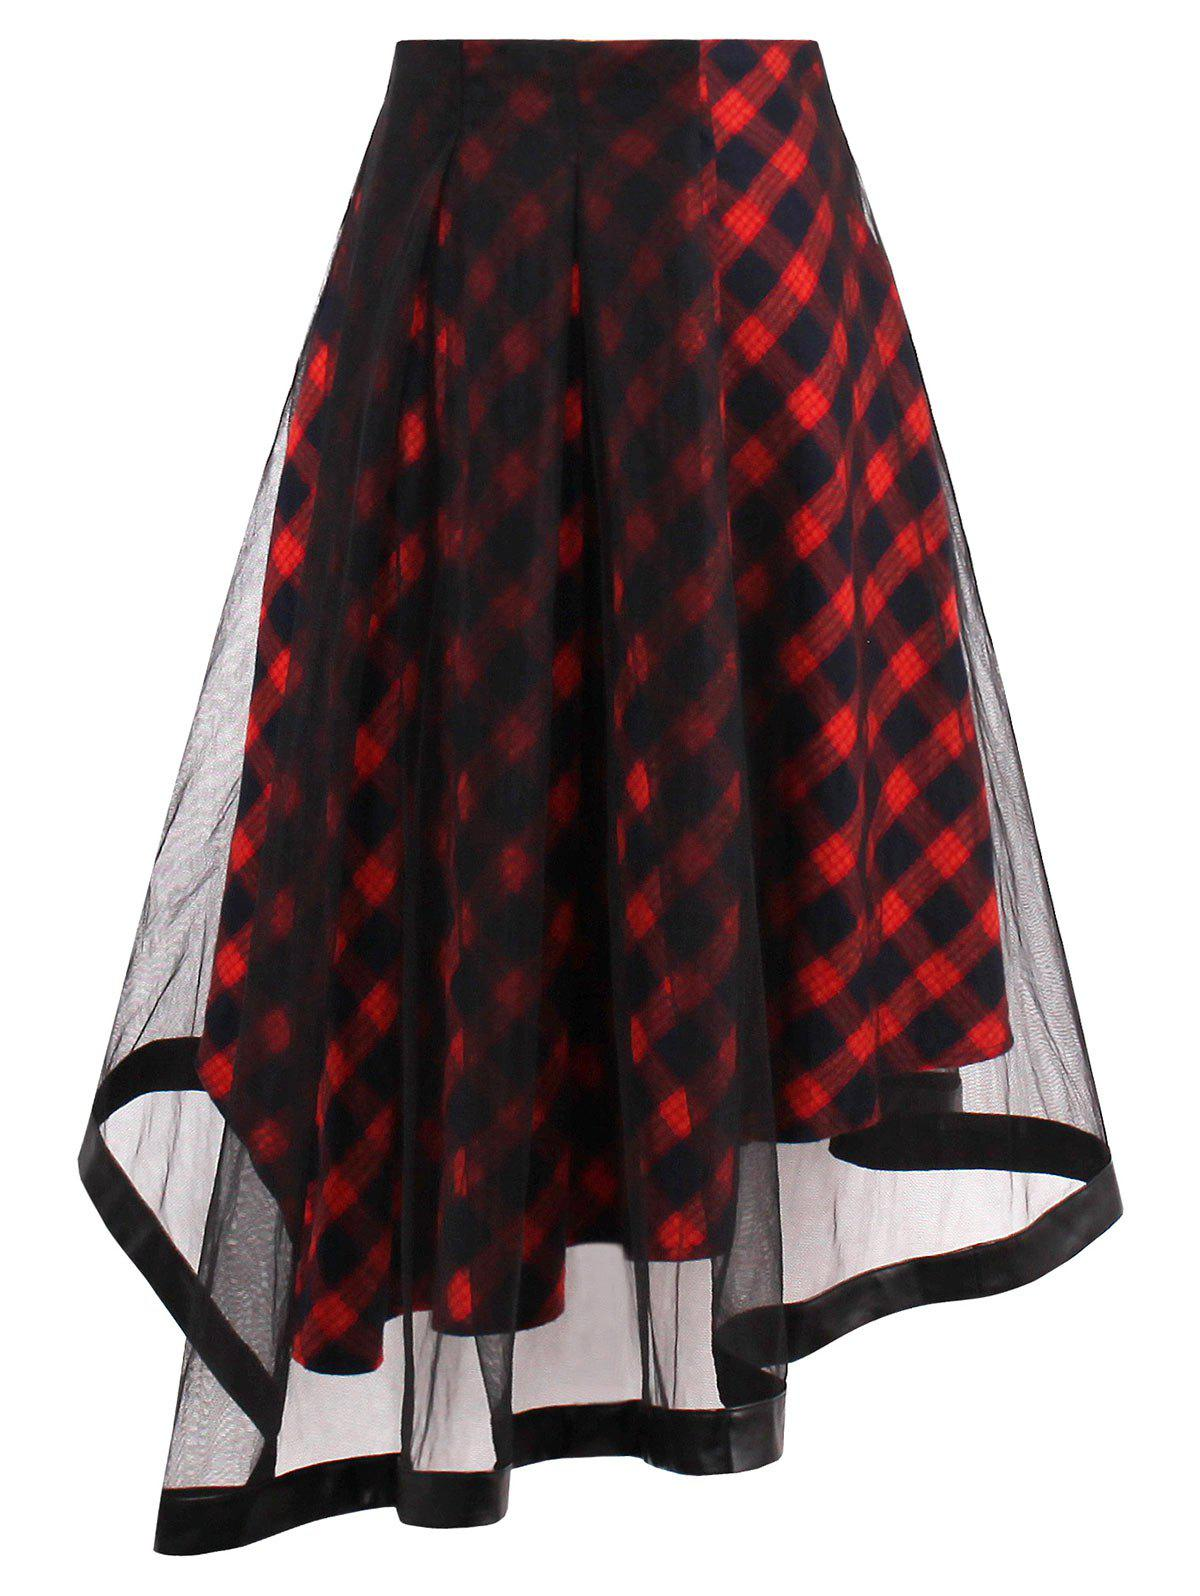 Sheer Yarn Insert Asymmetrical Tartan Midi Skirt - RED XL